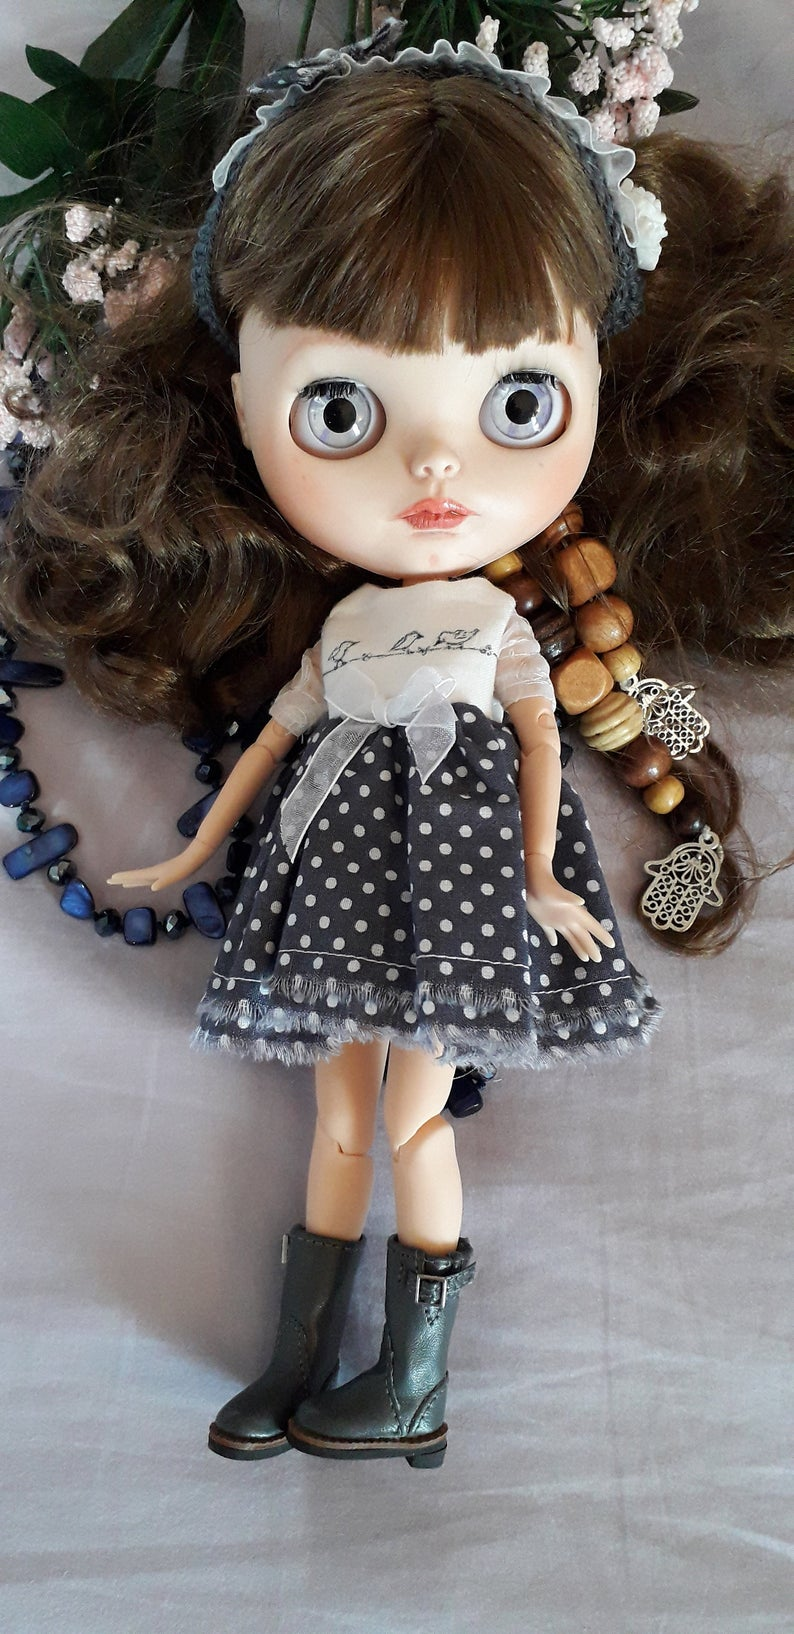 Rylee - Custom Blythe Doll One-Of-A-Kind OOAK Sold-out Custom Blythes